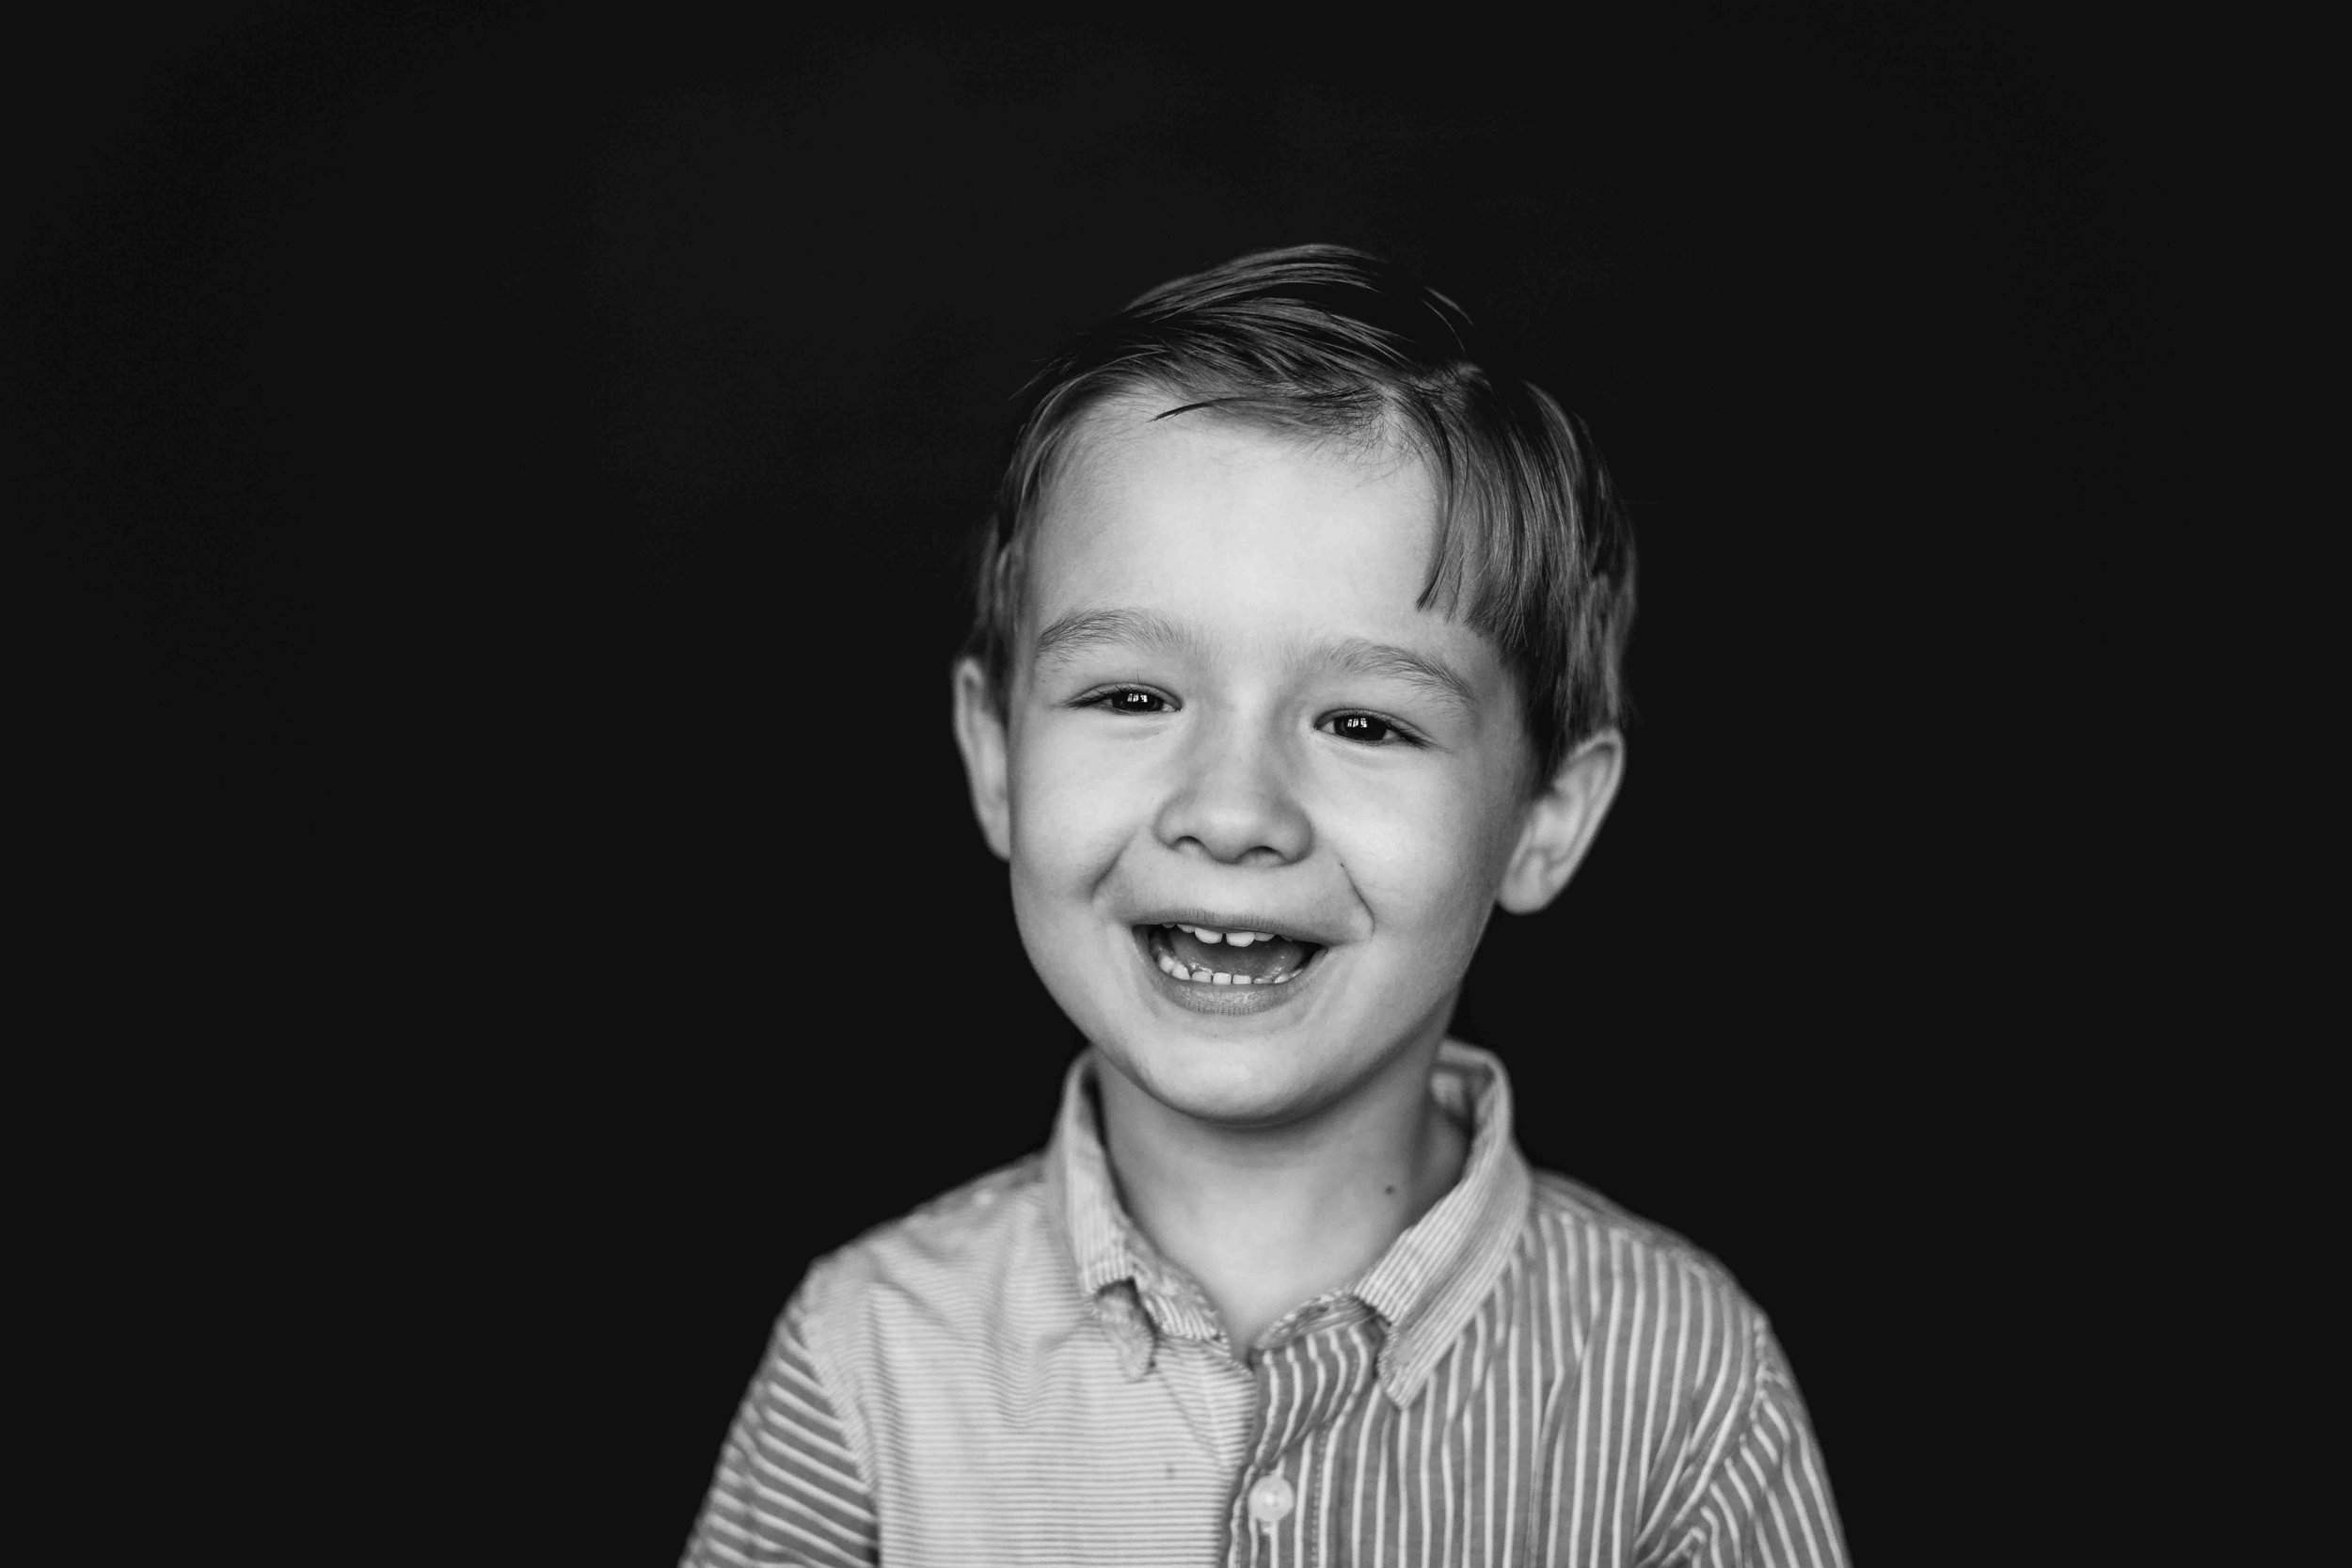 20180914_0210--4yr-prek-3day----74--black and white__12snowflake-pittsburgh-boutique-school-photography.jpg